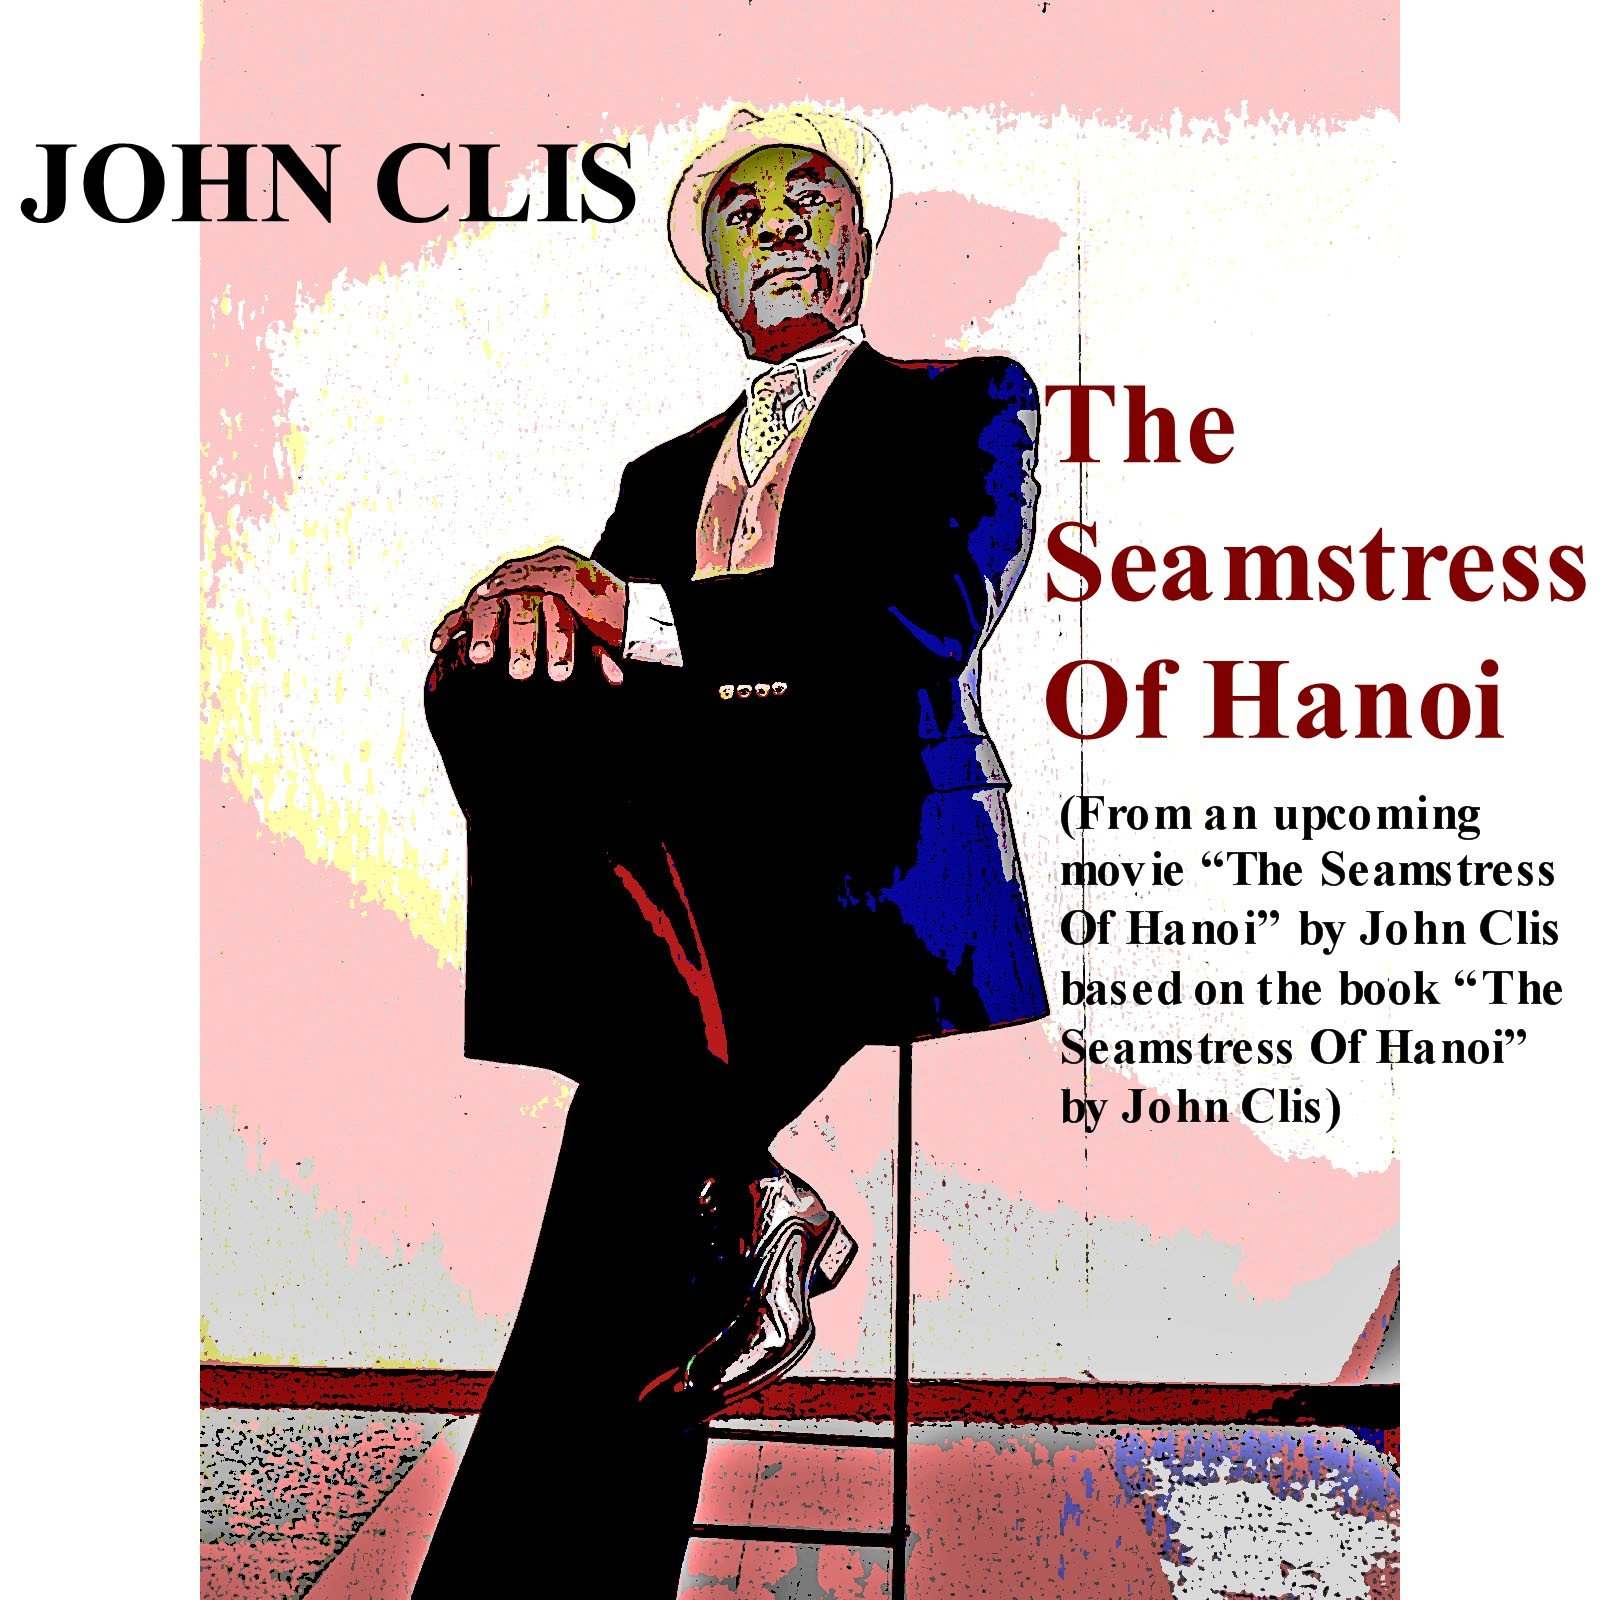 https://0201.nccdn.net/4_2/000/000/03f/ac7/John-Clis---The-Seamstress-Of-Hanoi---Pic-1.jpg